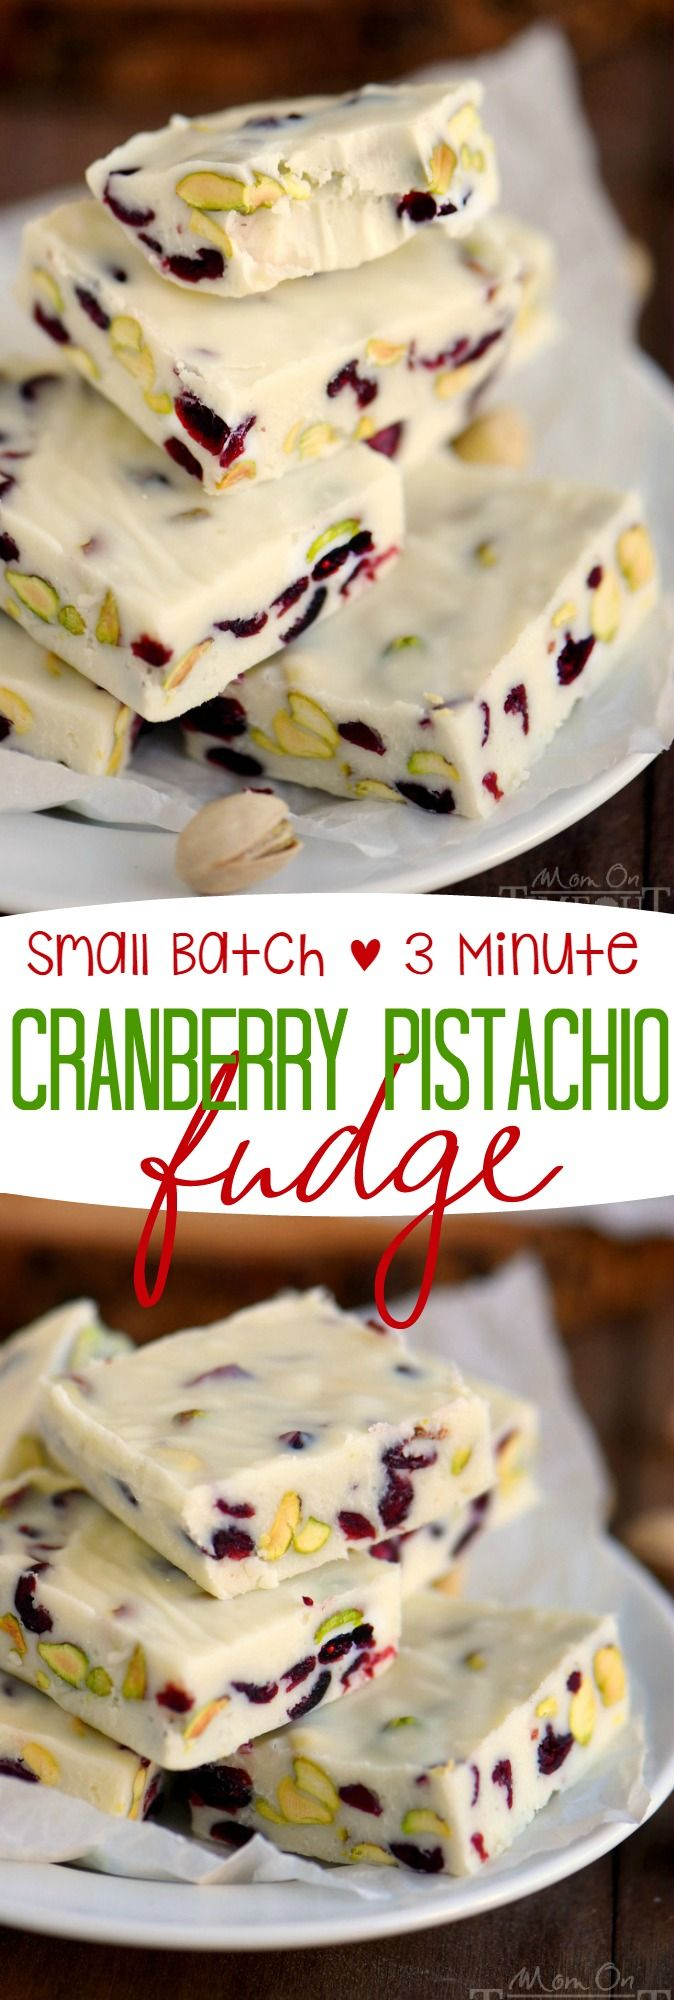 Small Batch 3 Minute Cranberry Pistachio Fudge on MyRecipeMagic.com